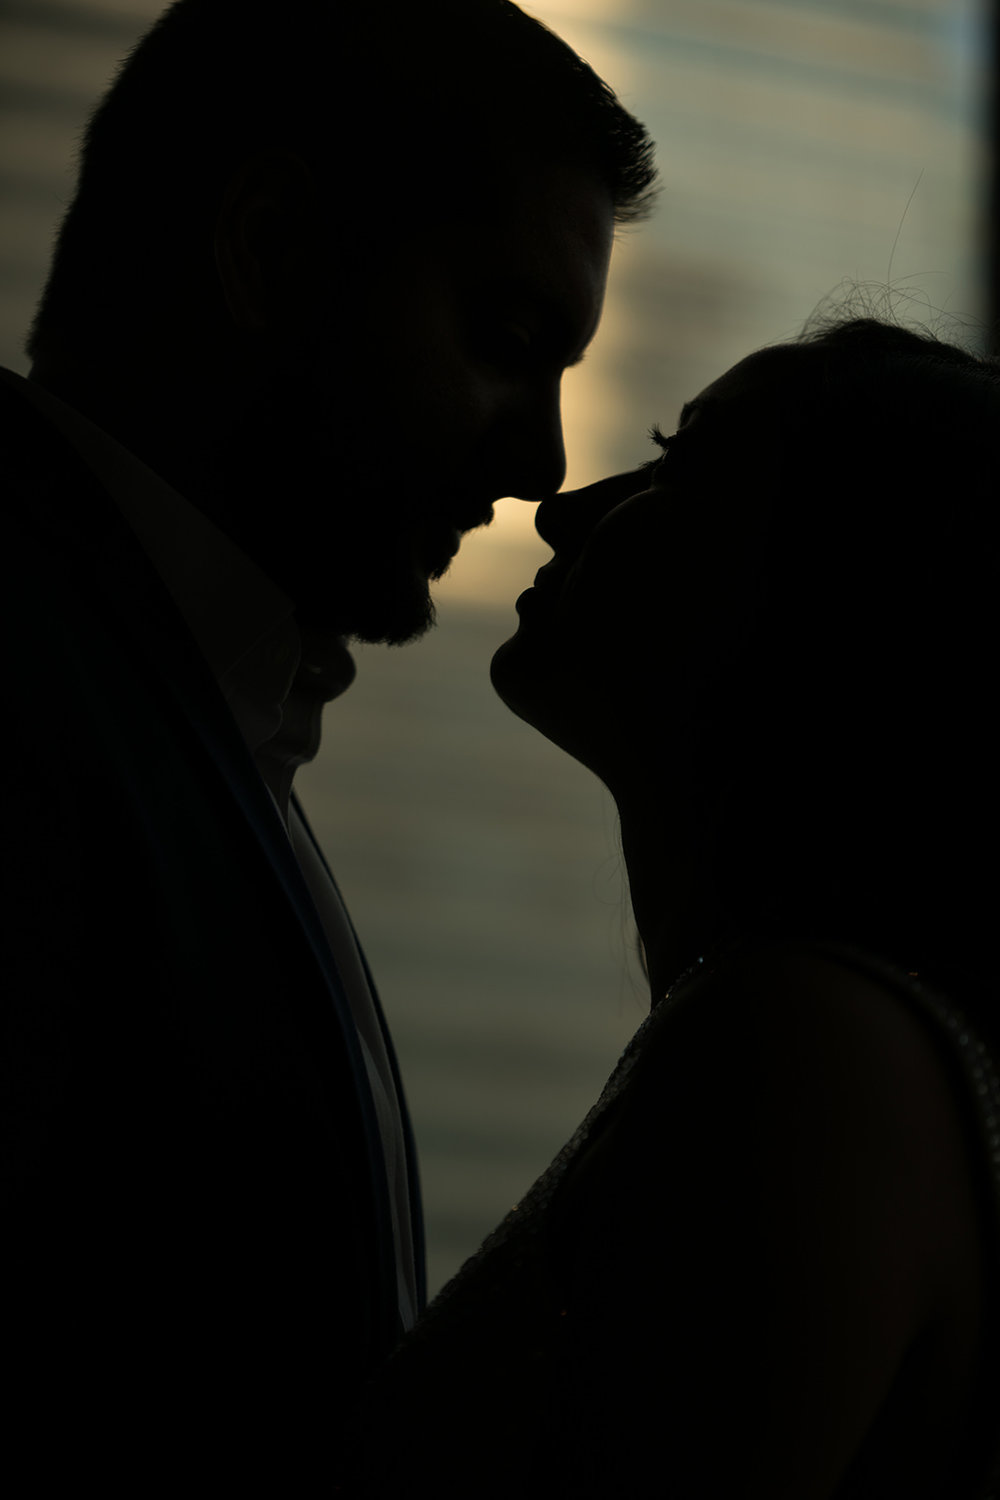 Le Cape Weddings - Chicago Engagement Session - Rina and Manan -43.jpg